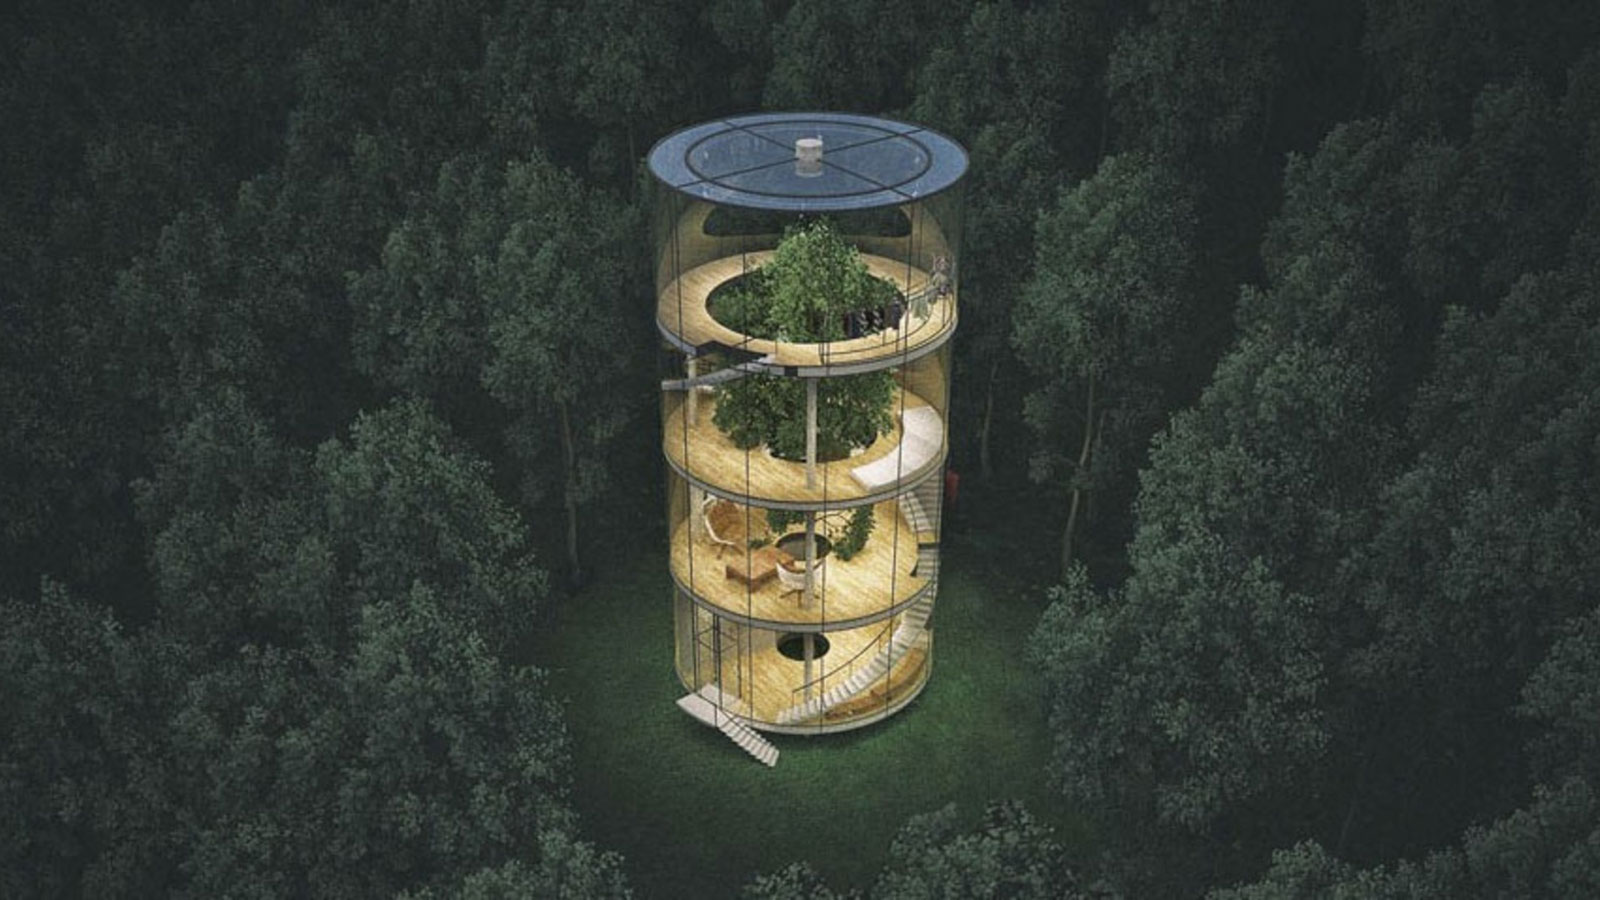 THE TUBULAR TREE HOUSE BY AIBEK ALMASSOV